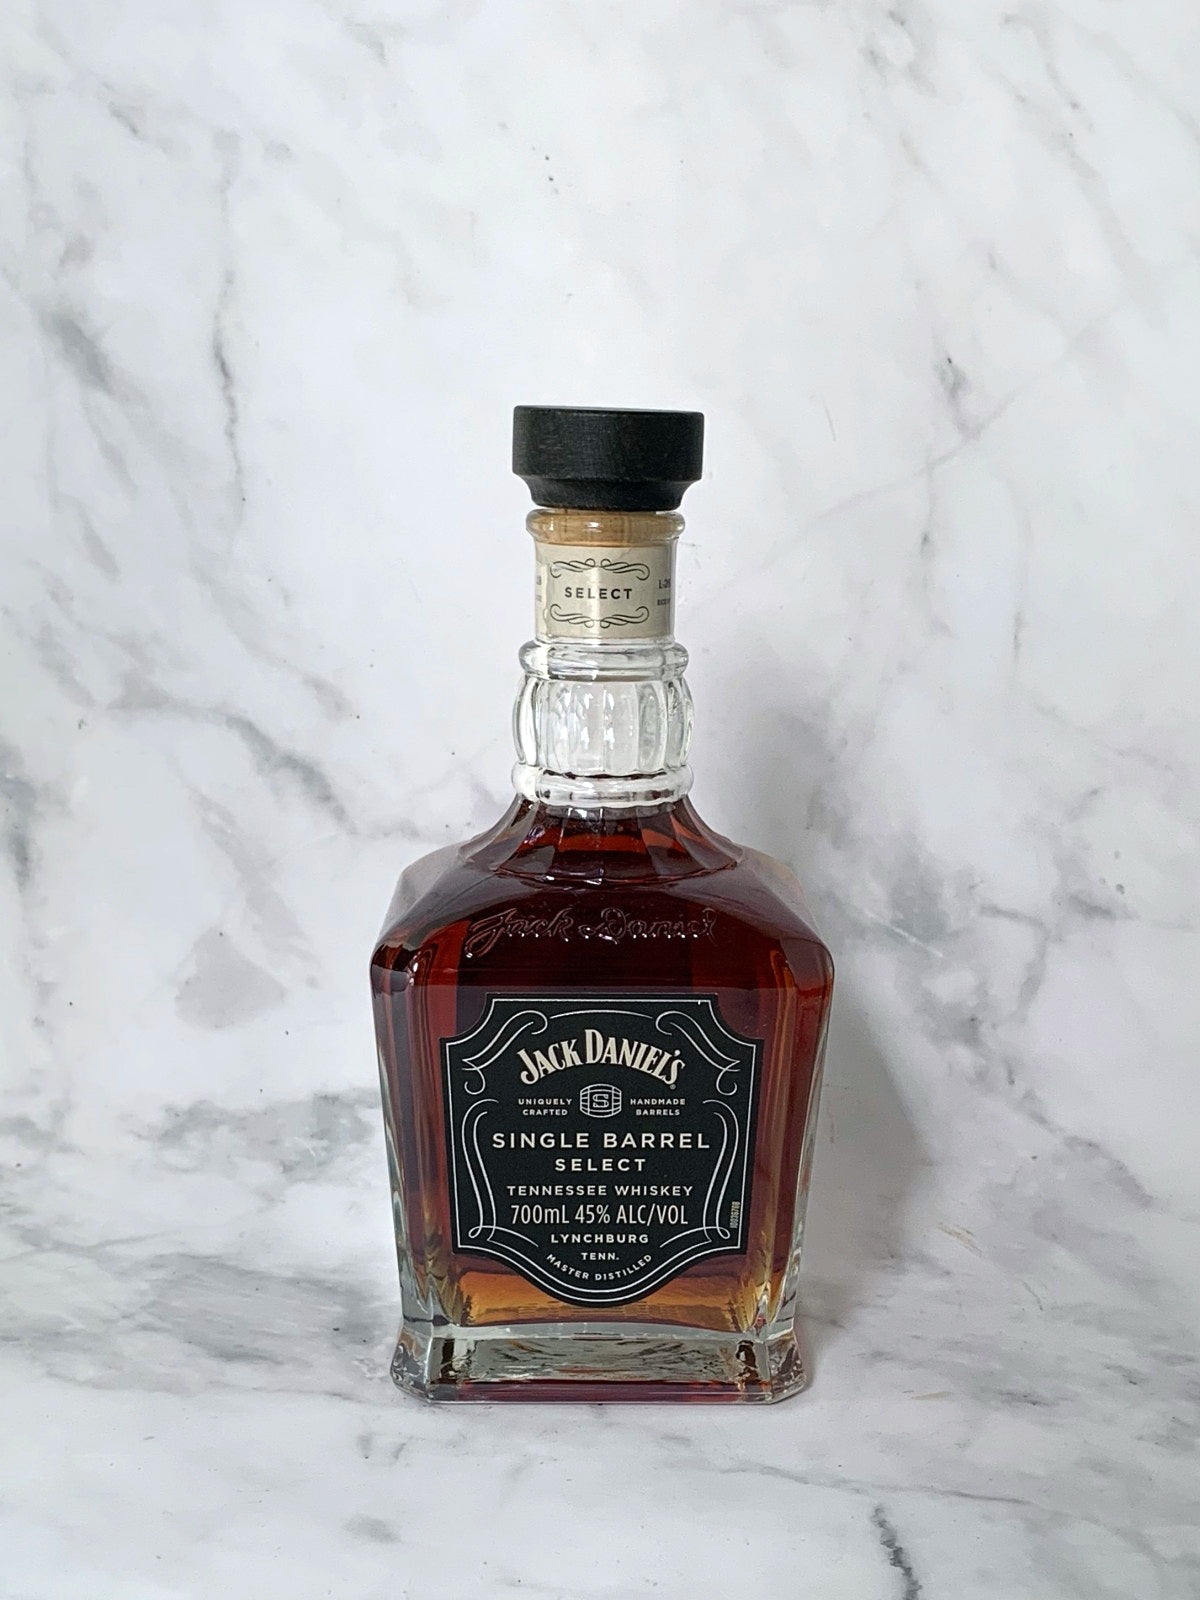 Jack Daniels Single Barrel Tennesse Whiskey (50ml serve)